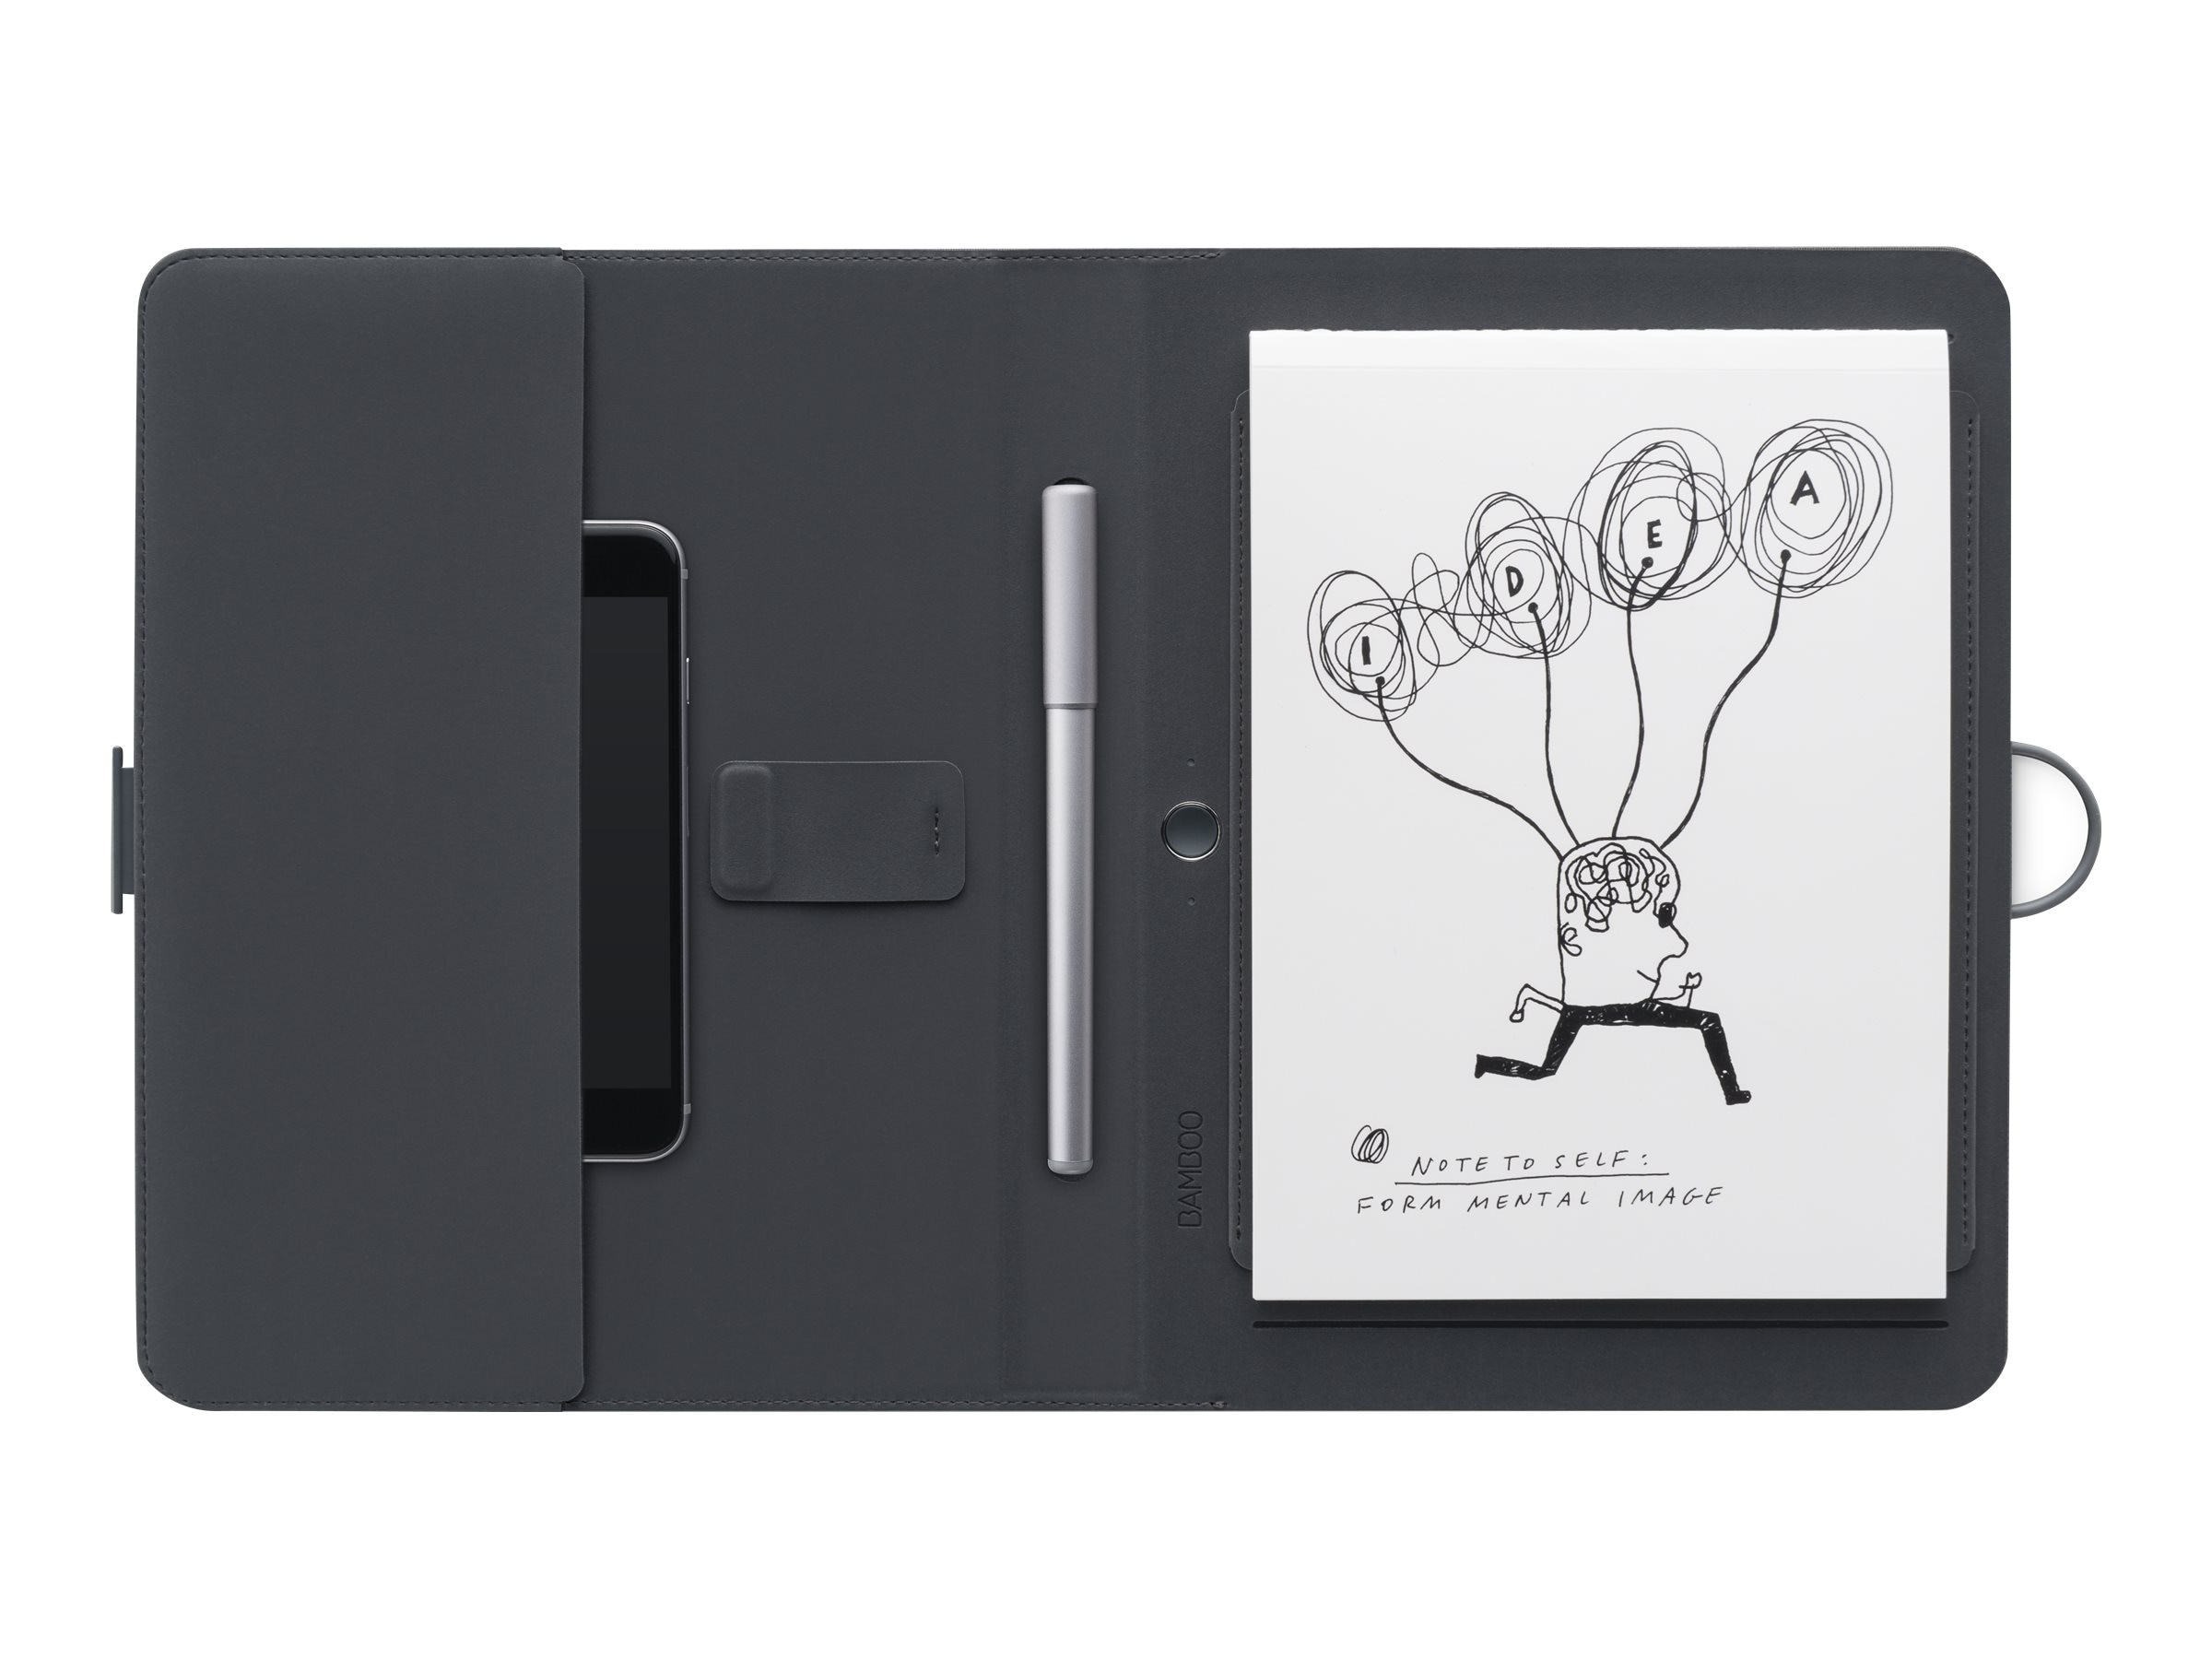 Wacom Bamboo Spark with Gadget Pocket